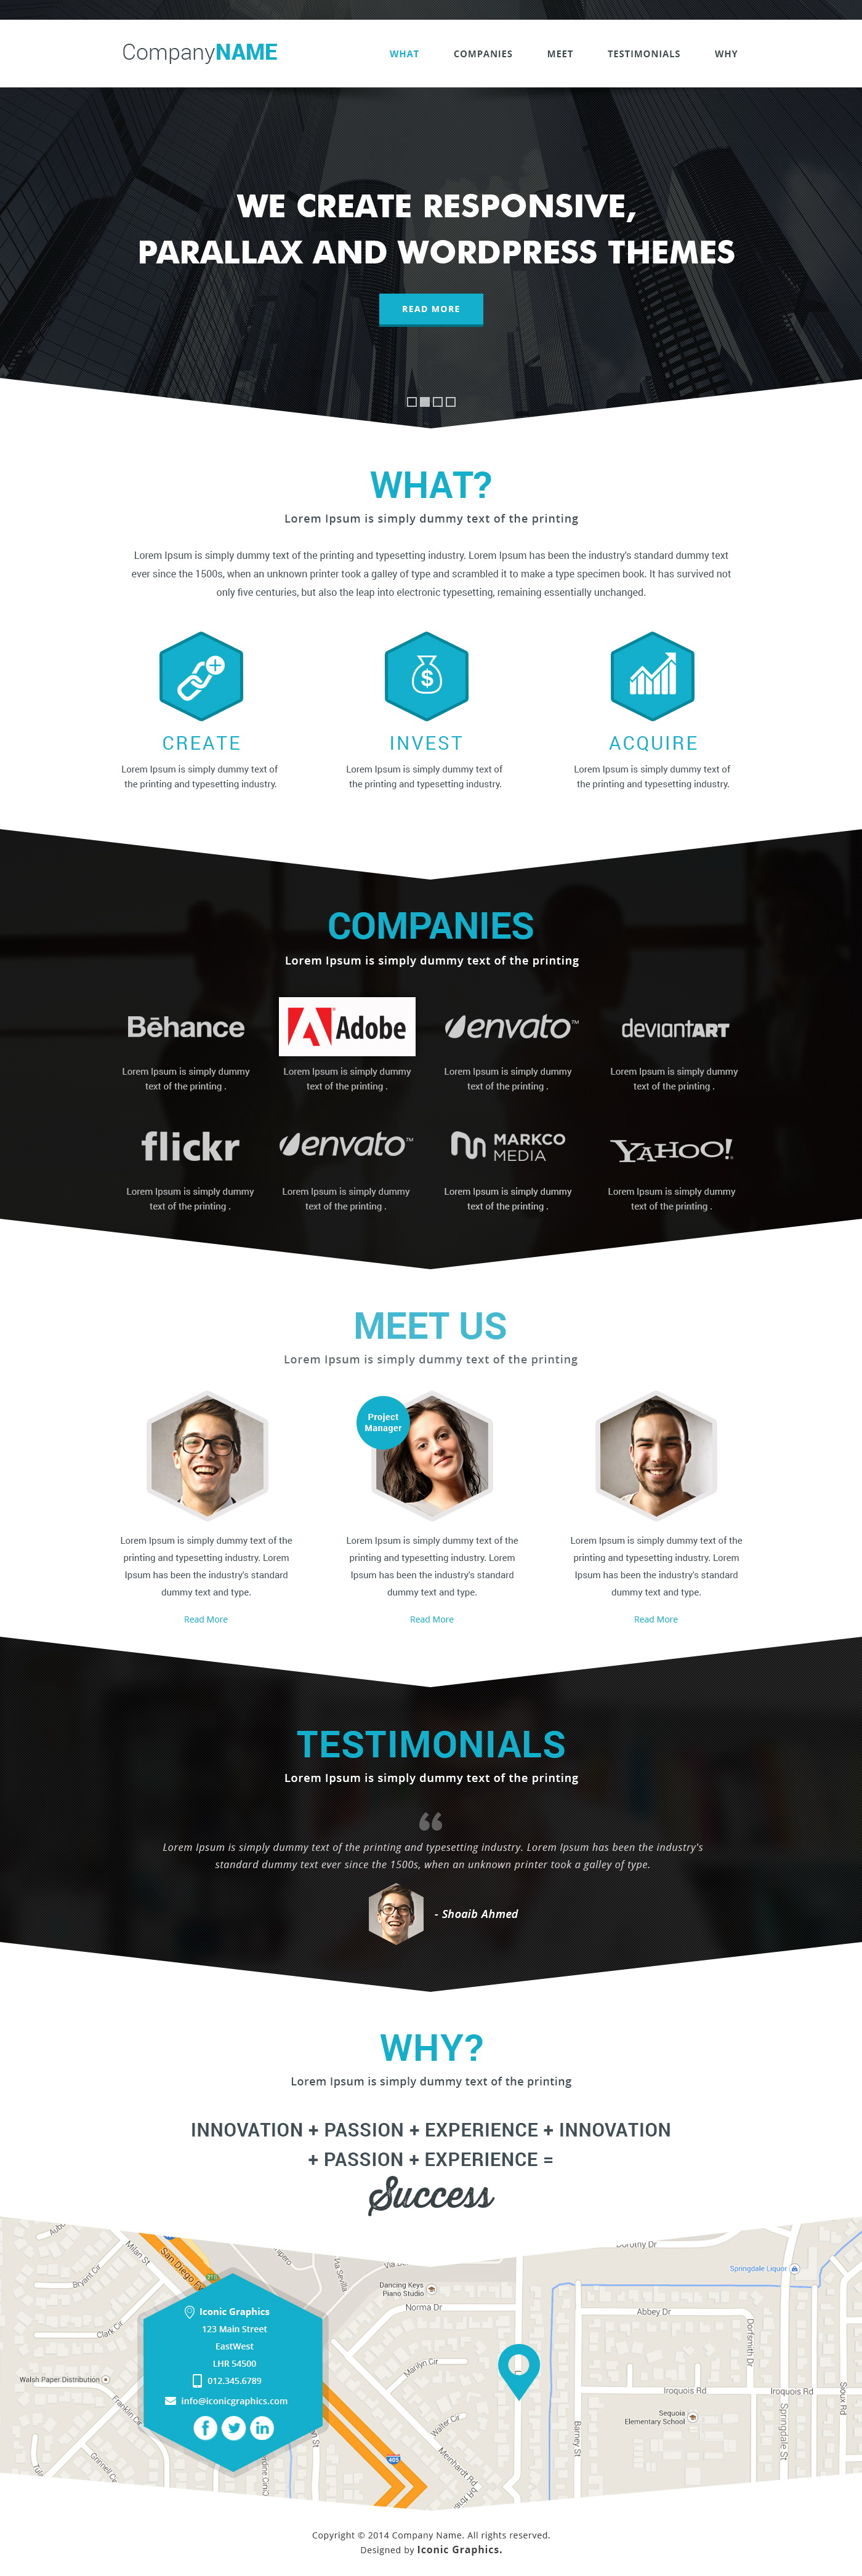 Parallax Website Template Free